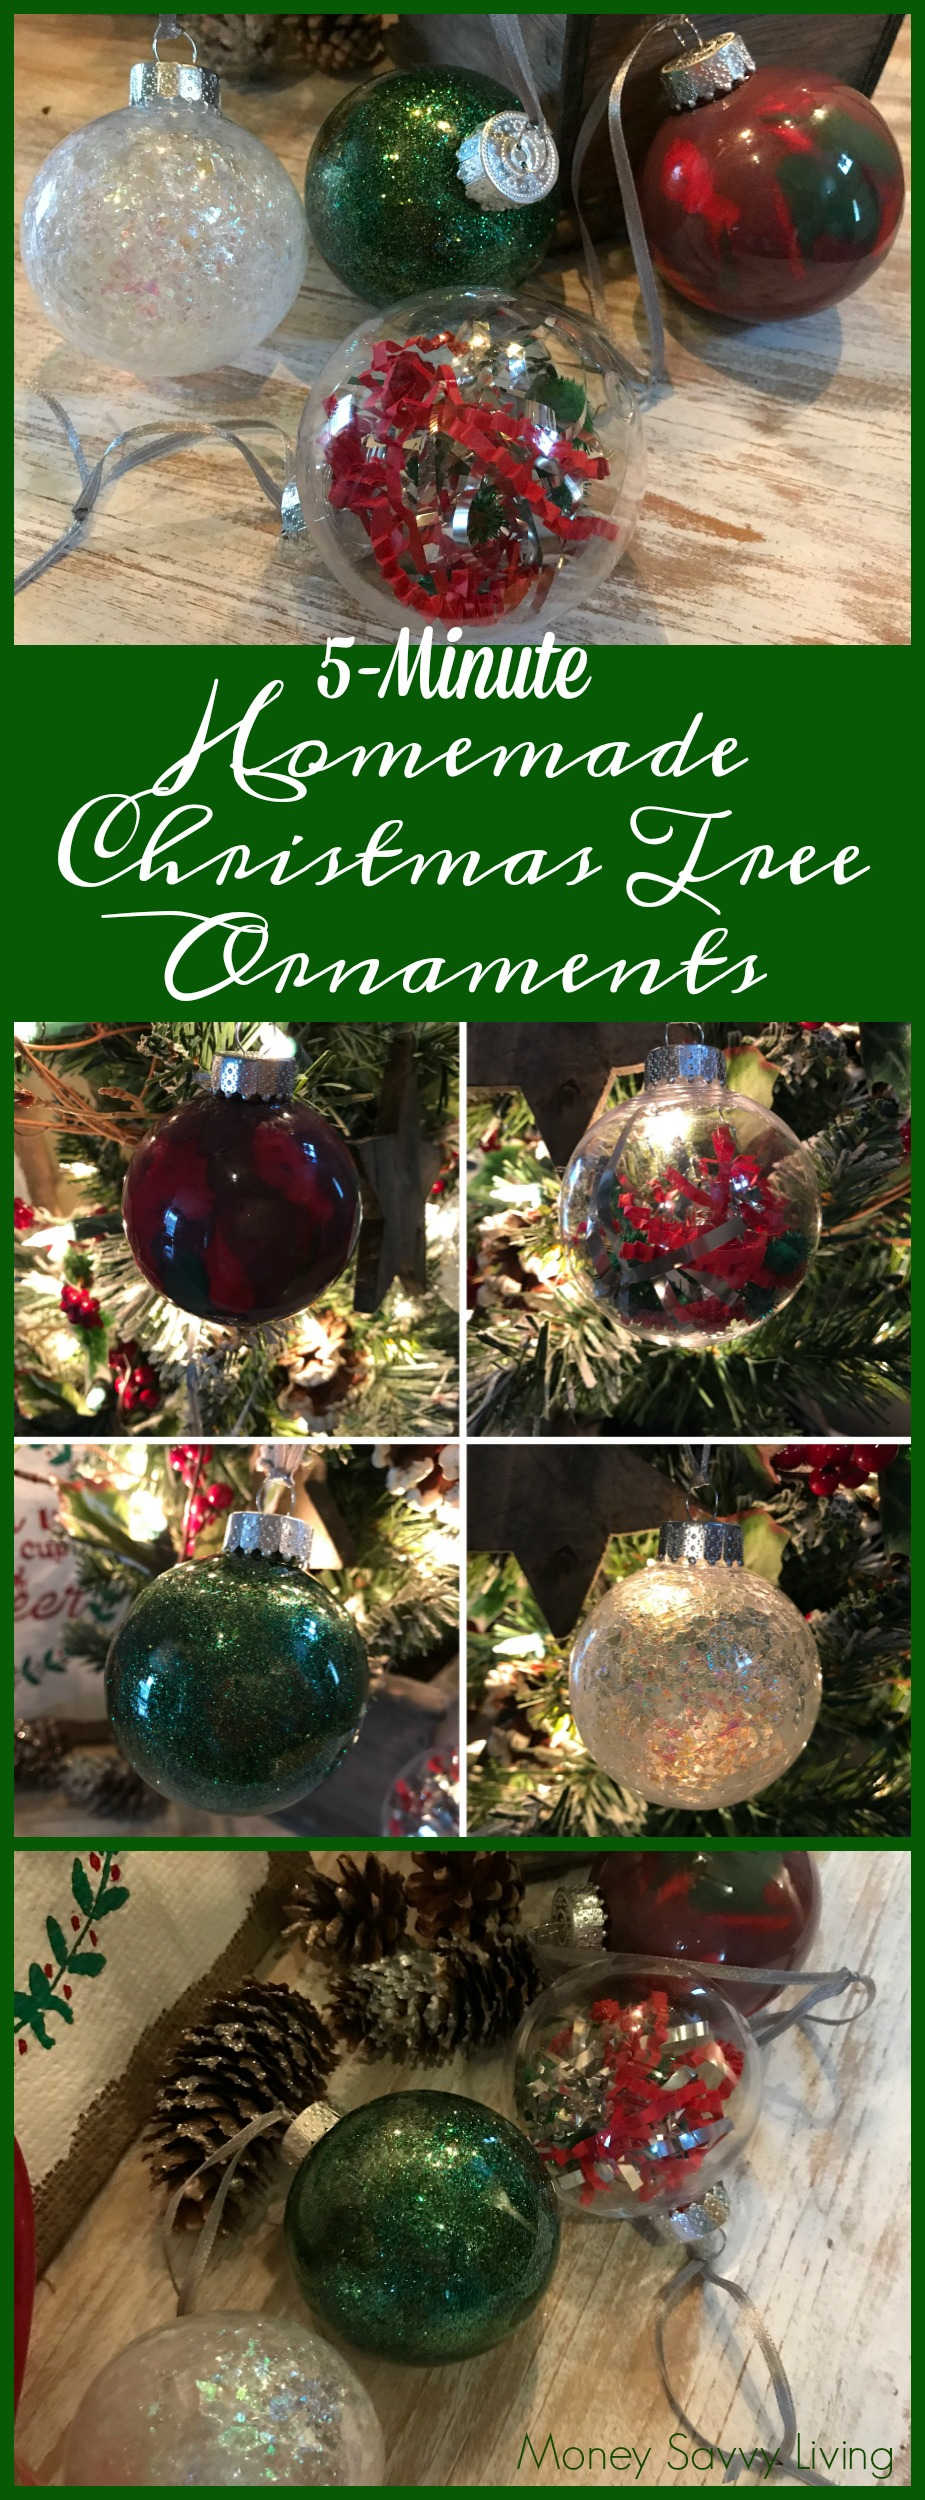 5-Minute Homemade Christmas Tree Ornaments. The creativity is nearly endless with these clear ornaments!  Here are just a few ways to make beautiful Christmas decorations in only 5 minutes!  #ornaments #Christmas #christmascrafts #christmascraftideas #christmasdecor #christmasornaments #christmasdecorations #christmasdecordiy #christmasdecorationsdiy #christmasornaments #christmasornamentsdiy #ornaments #christmascraftsforkids #glittercraft #paintcraft #nomesscraft #kidcraft #Christmasgiftideas